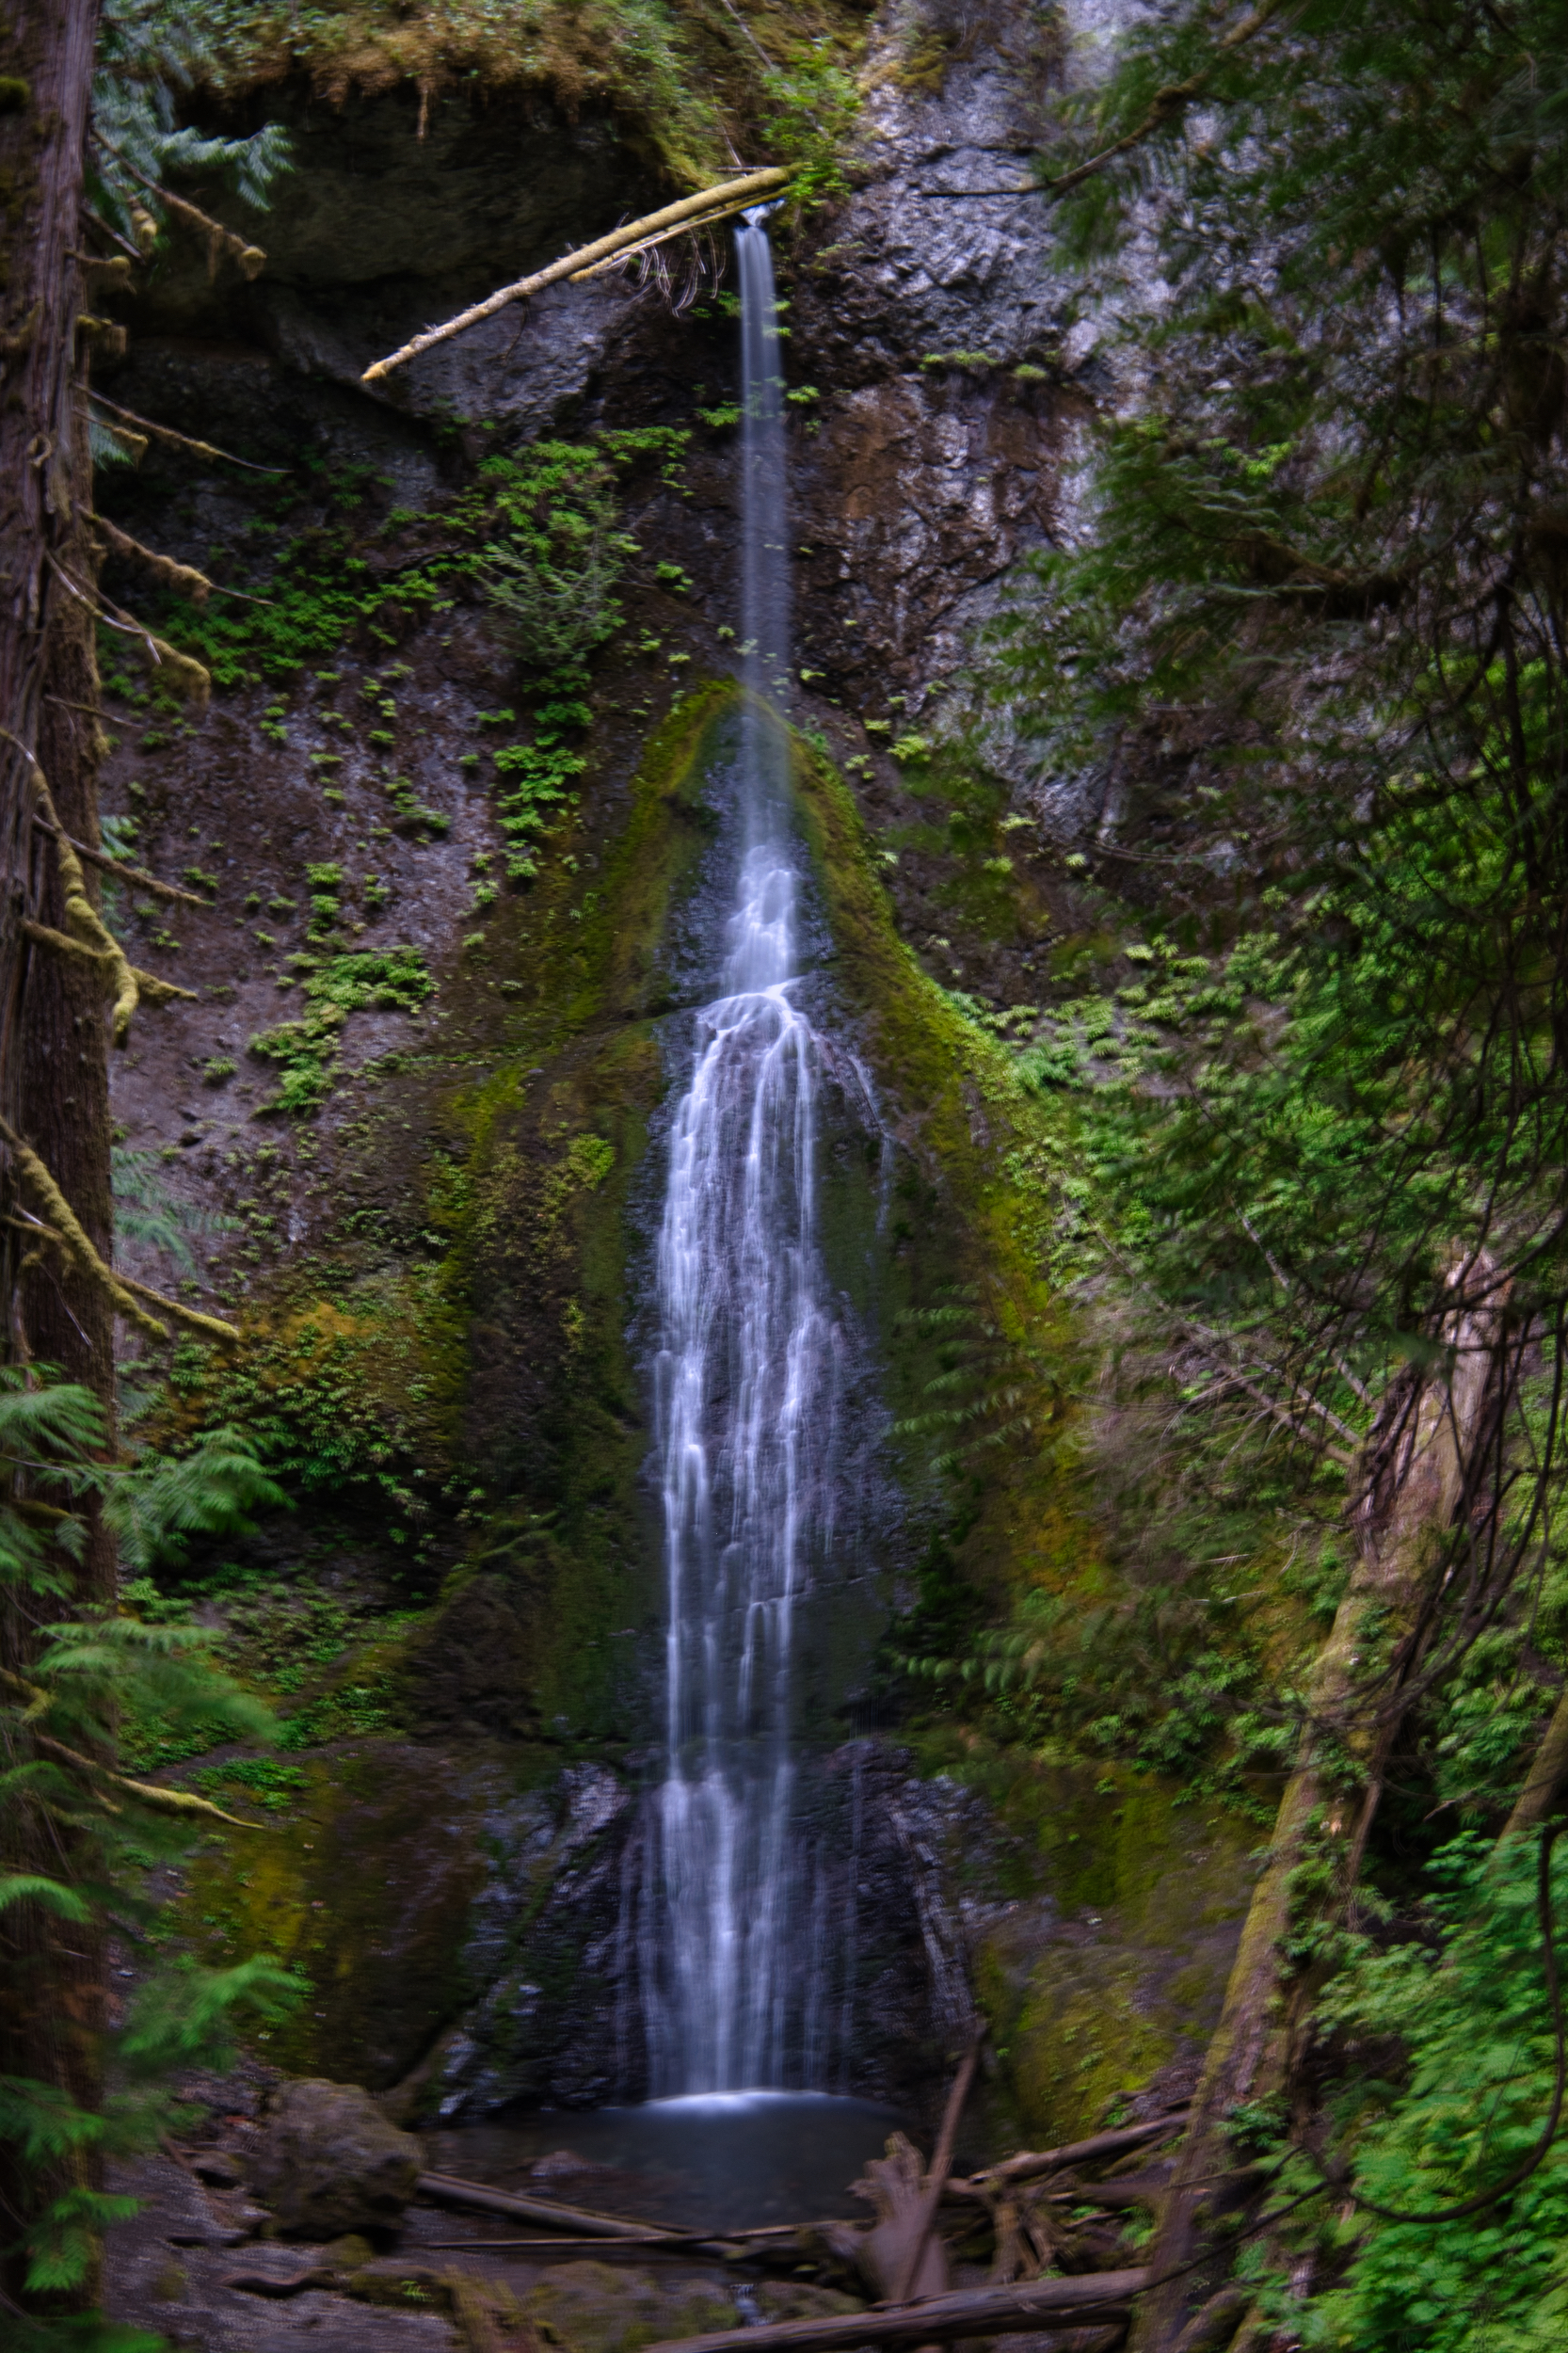 Marymere falls is a 90 foot graceful display.